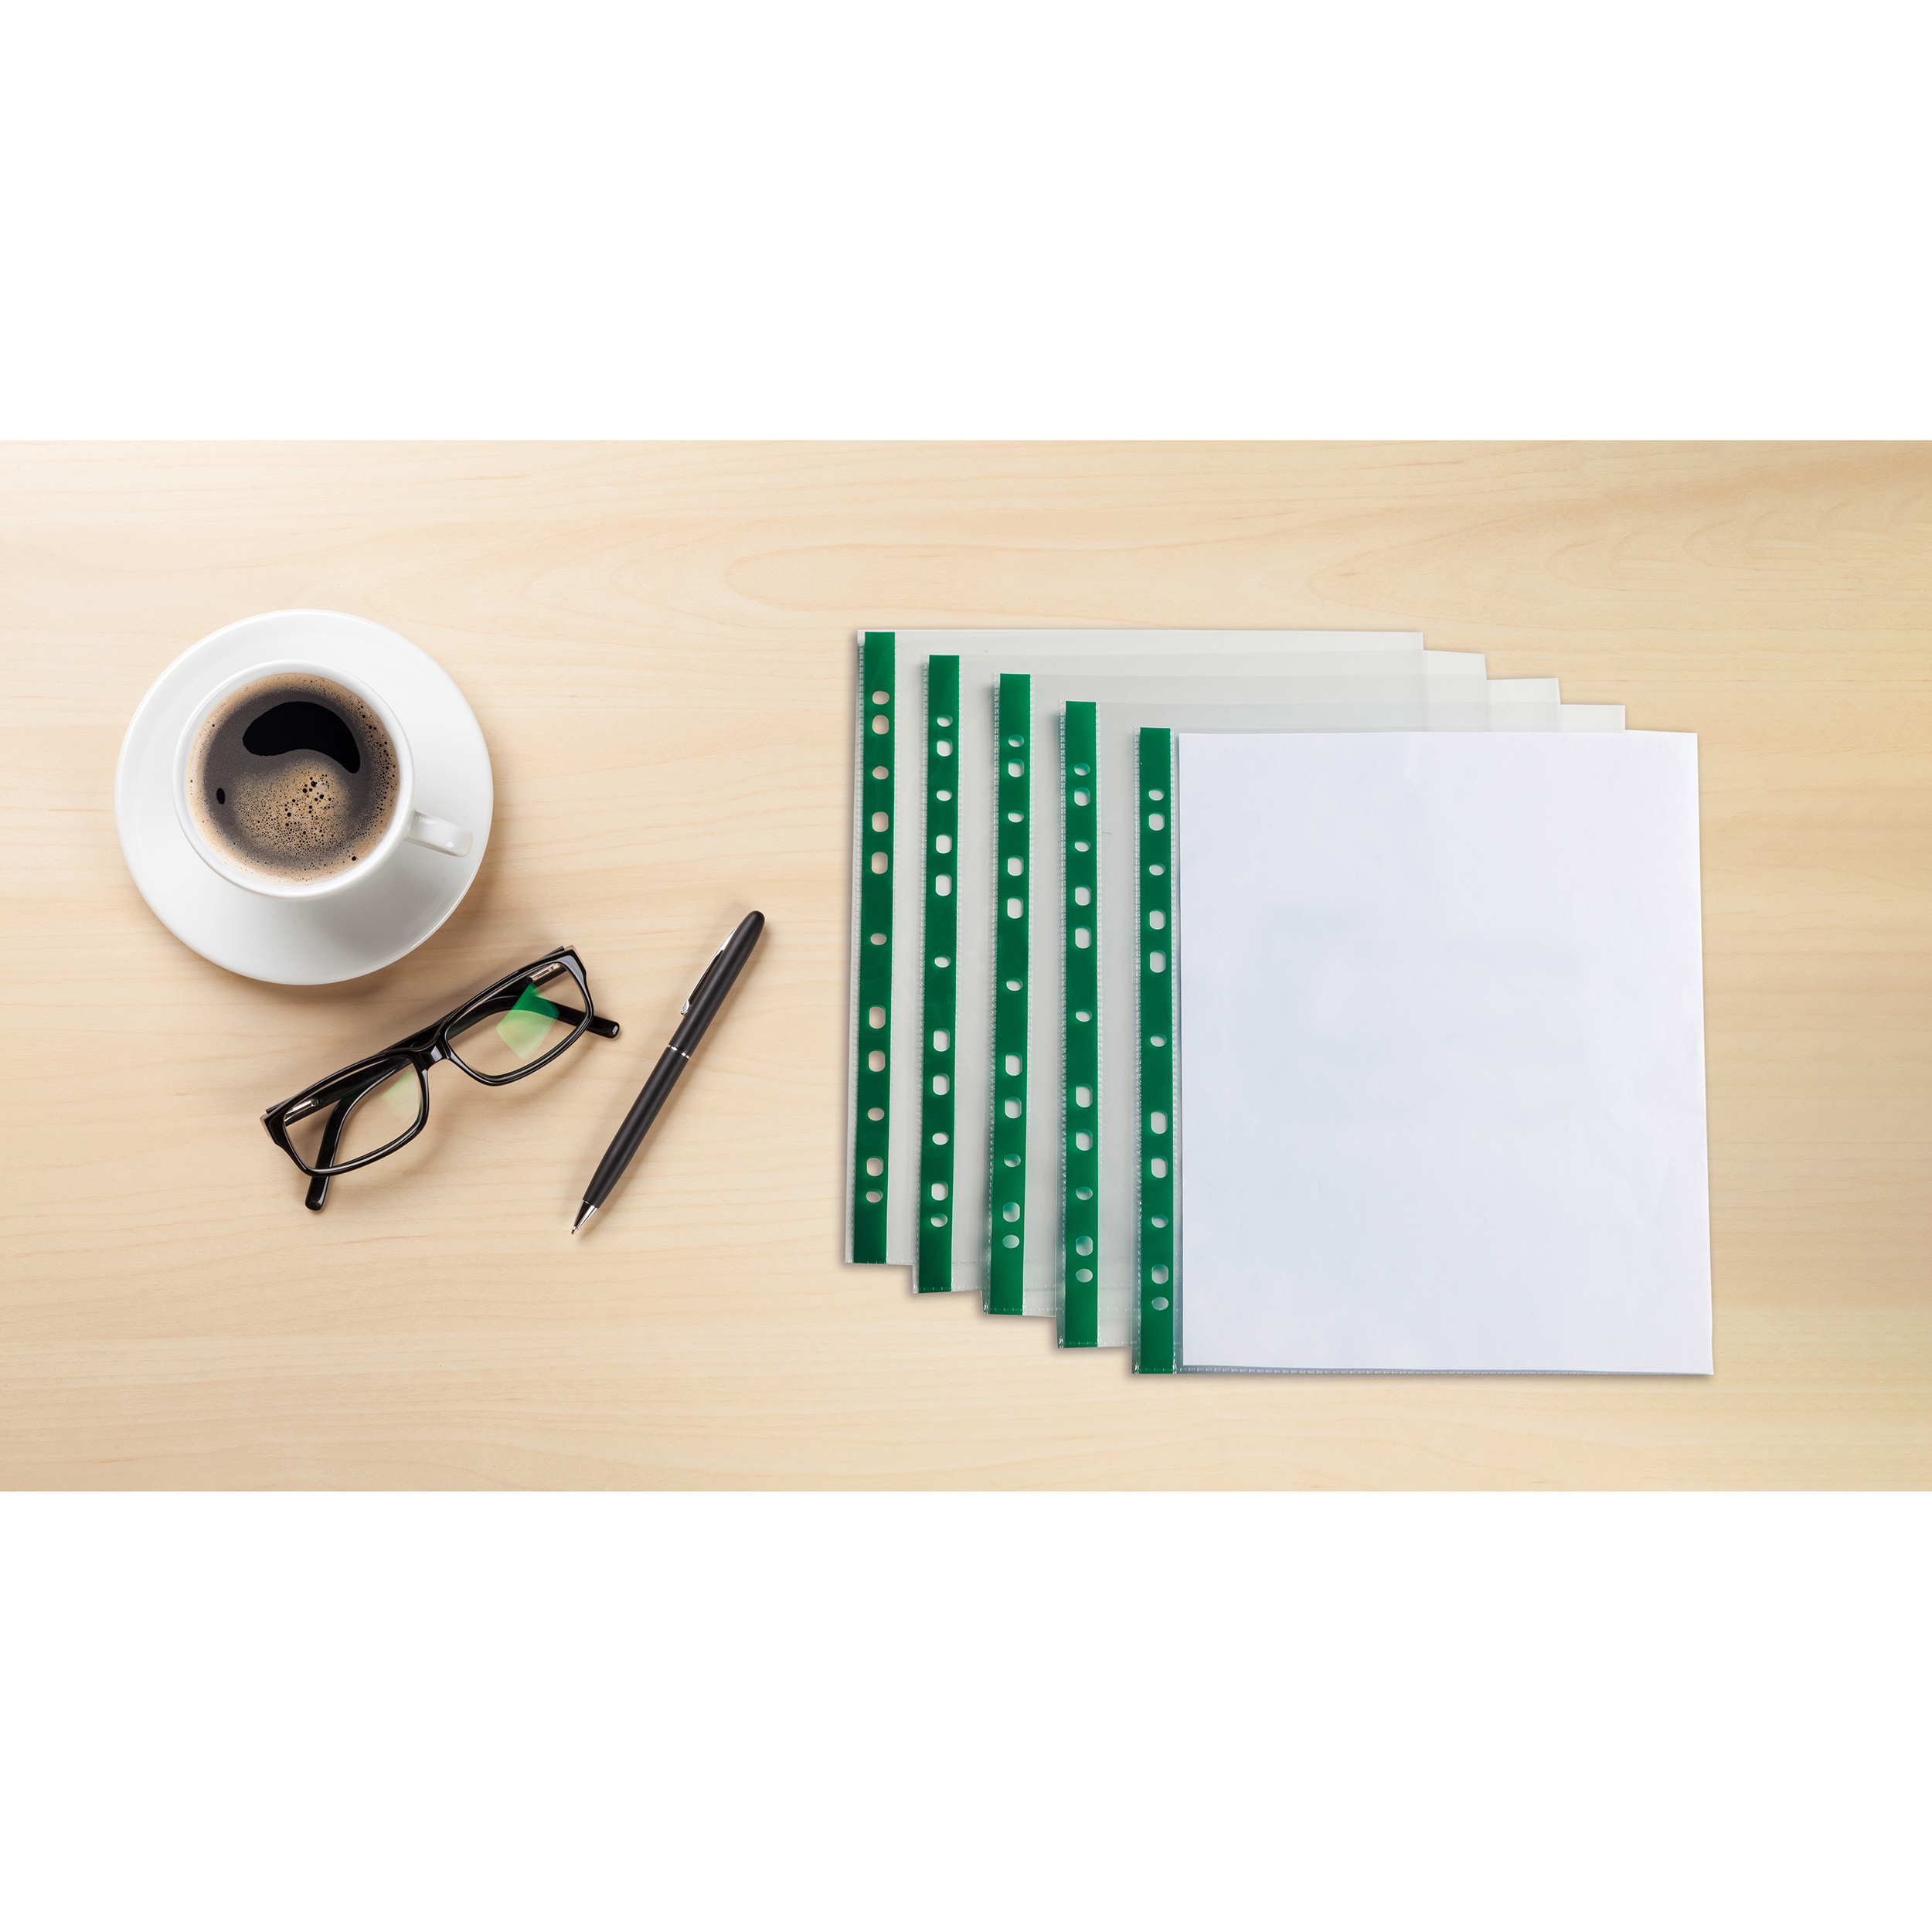 File pockets or accessories Elba Punched Pockets Glass Clear Green Strip A4 Ref 400002137_XX1220 Pack 100 2 for 1 Jan 12/20